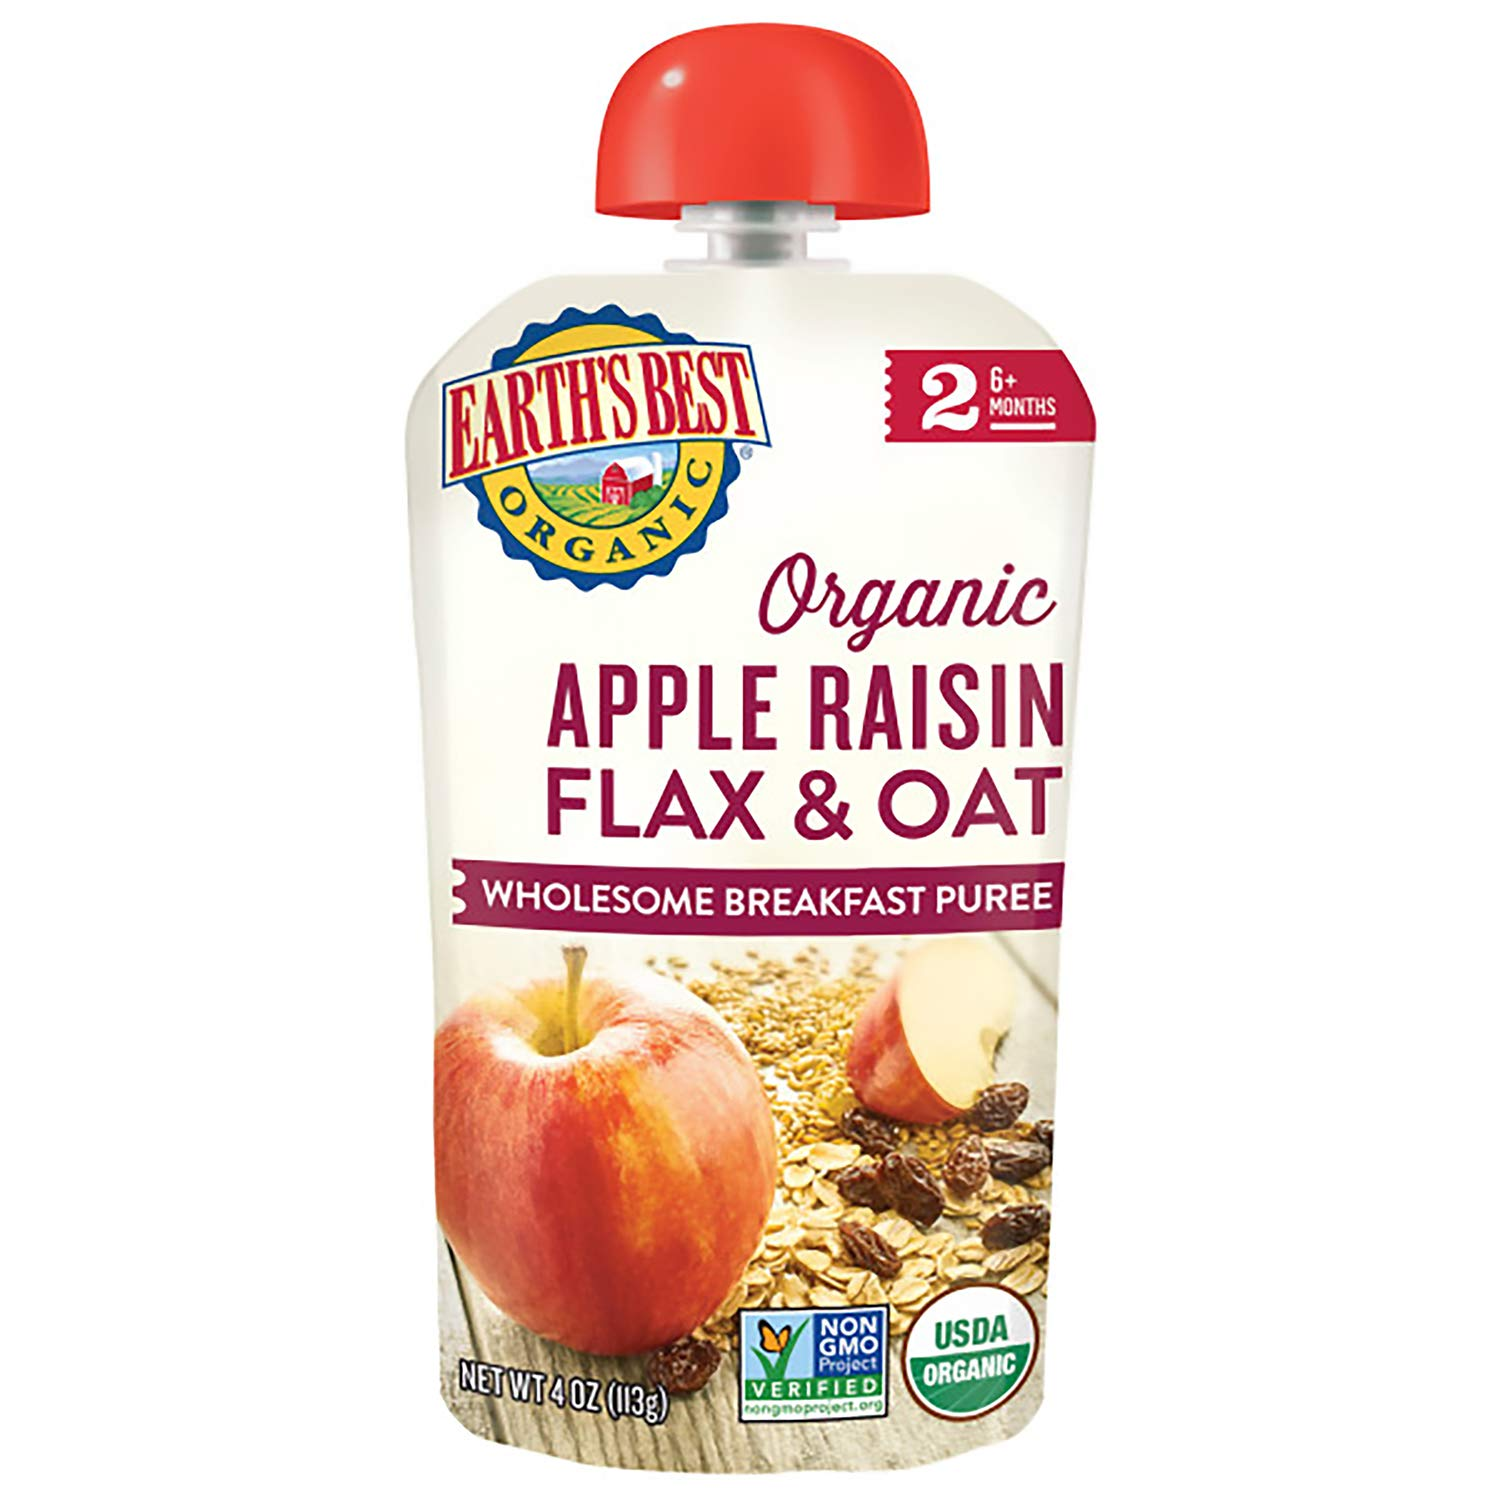 Earth's Best Organic Stage 2 Breakfast Baby Food, Apple Raisin Flax & Oat, 4 Oz Pouch (Pack of 12)